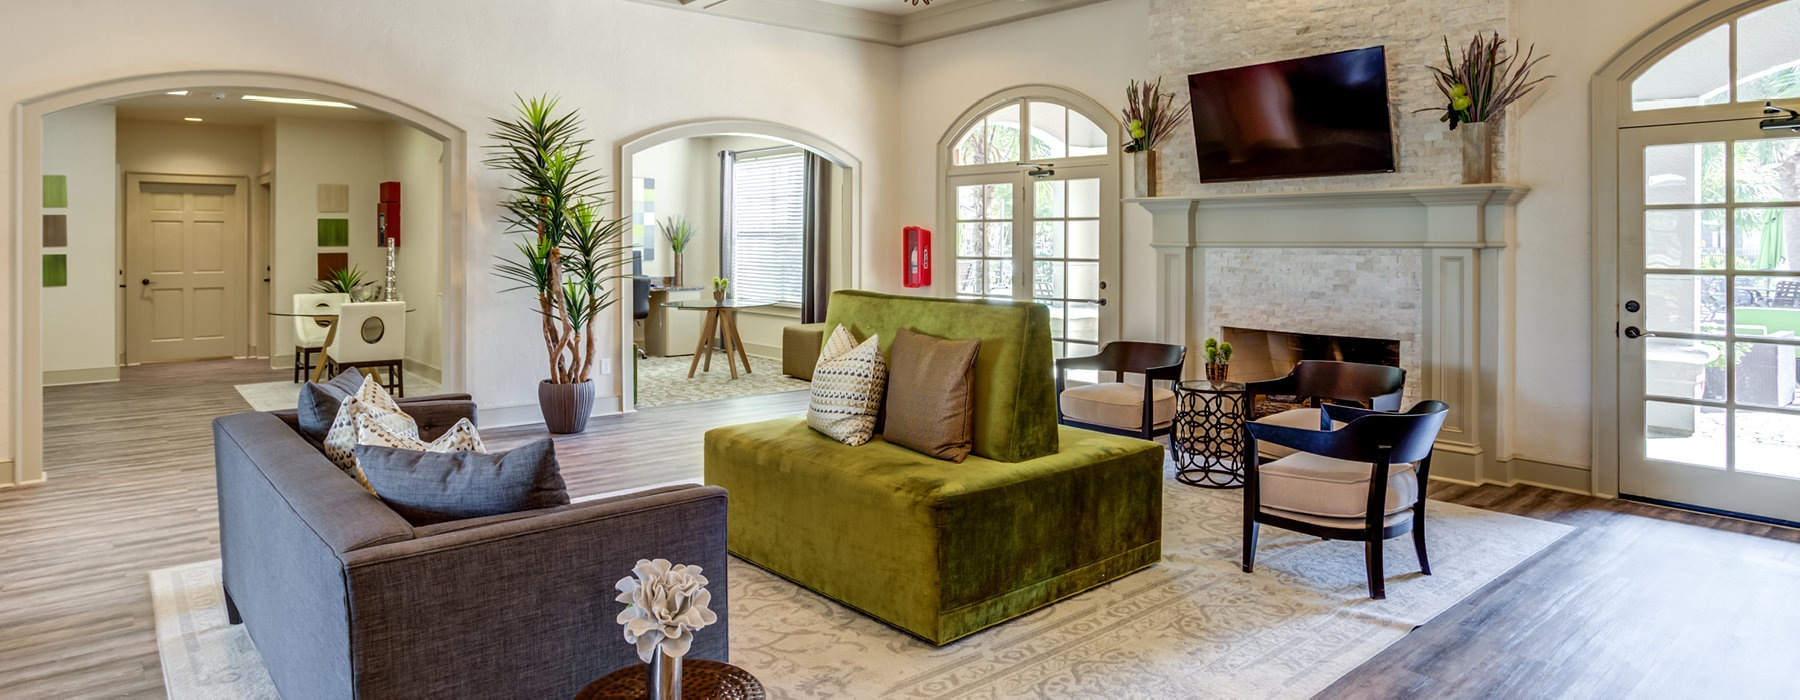 Large lobby couch seating, large TV and floor to ceiling windows for plenty of natural light.